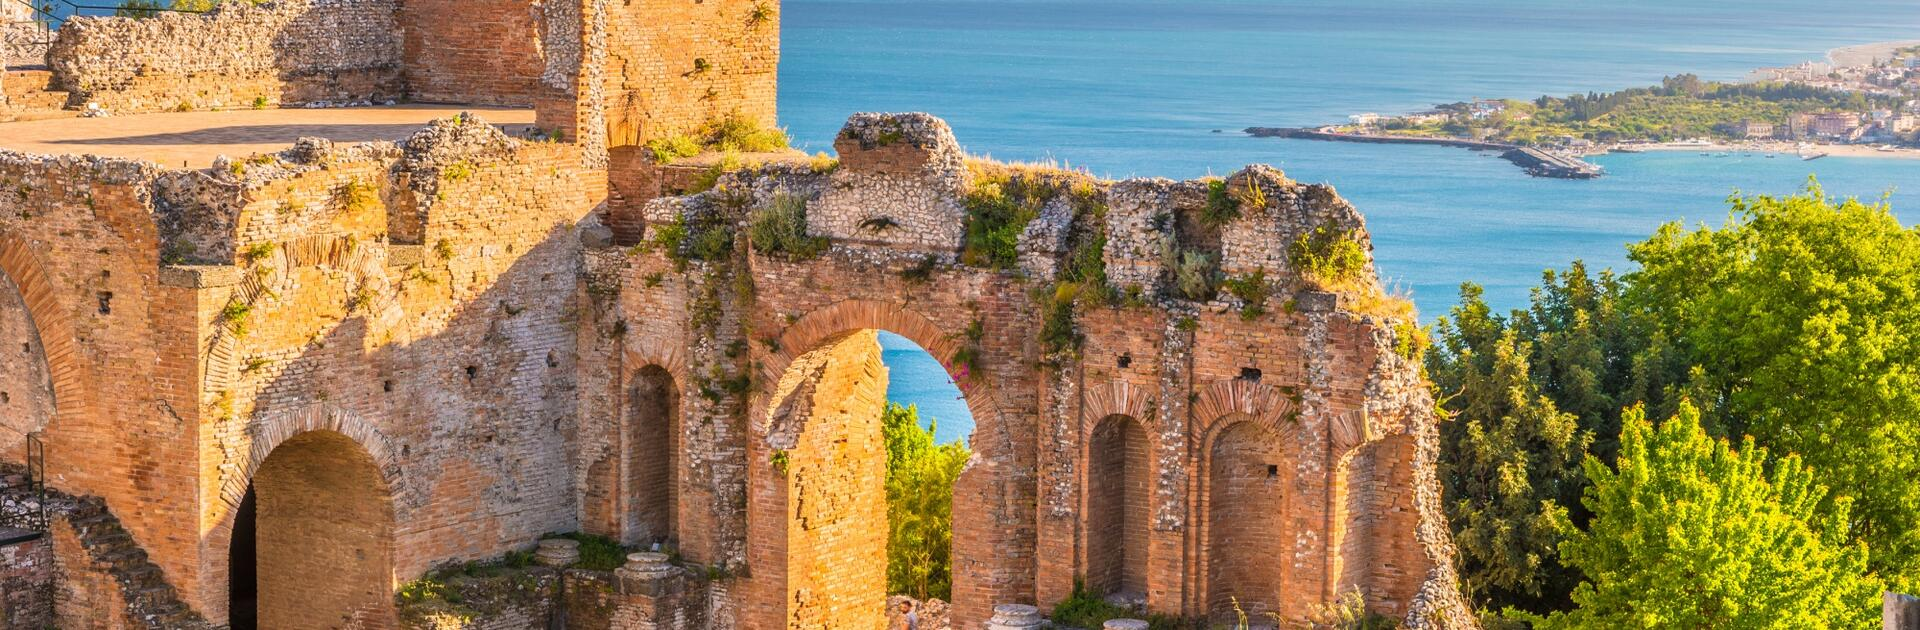 Taormina, a land for the soul